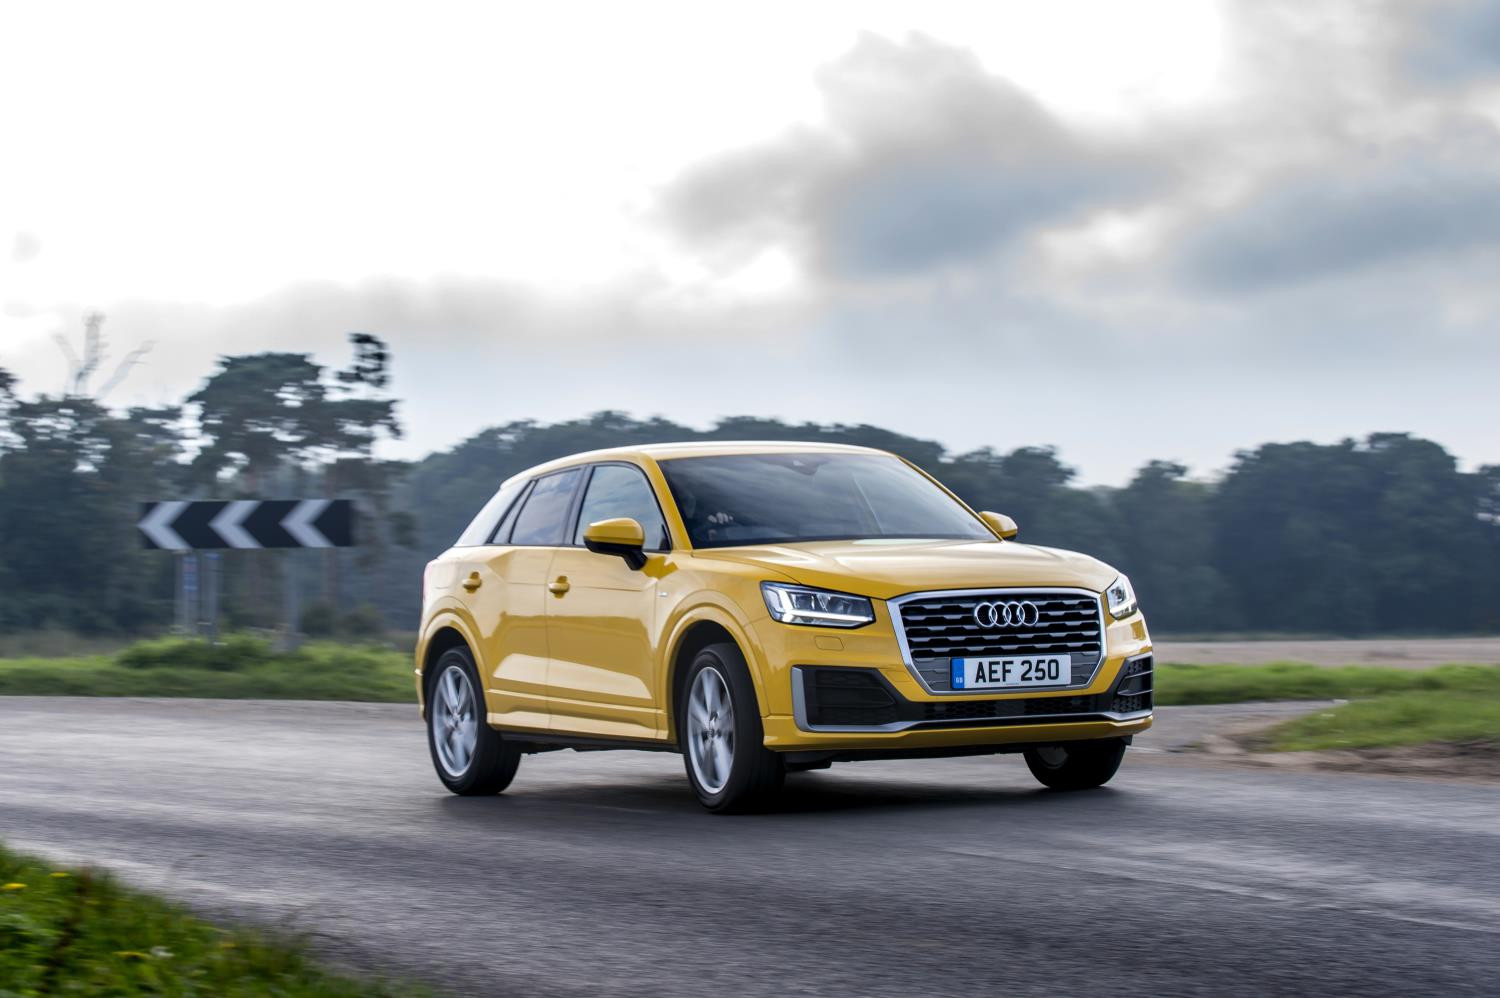 Bright yellow Audi Q2 driving down the road towards you